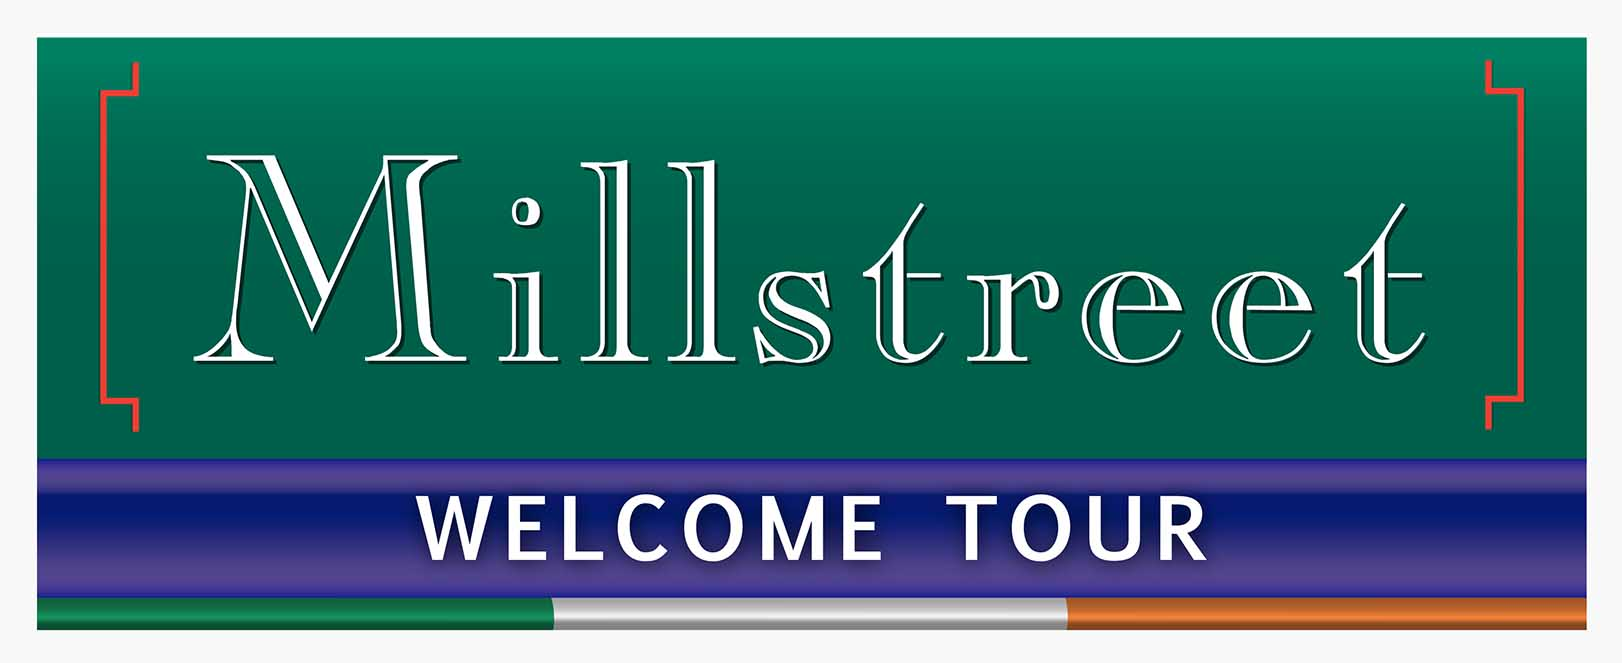 Millstreet_Welcome Tour 2017